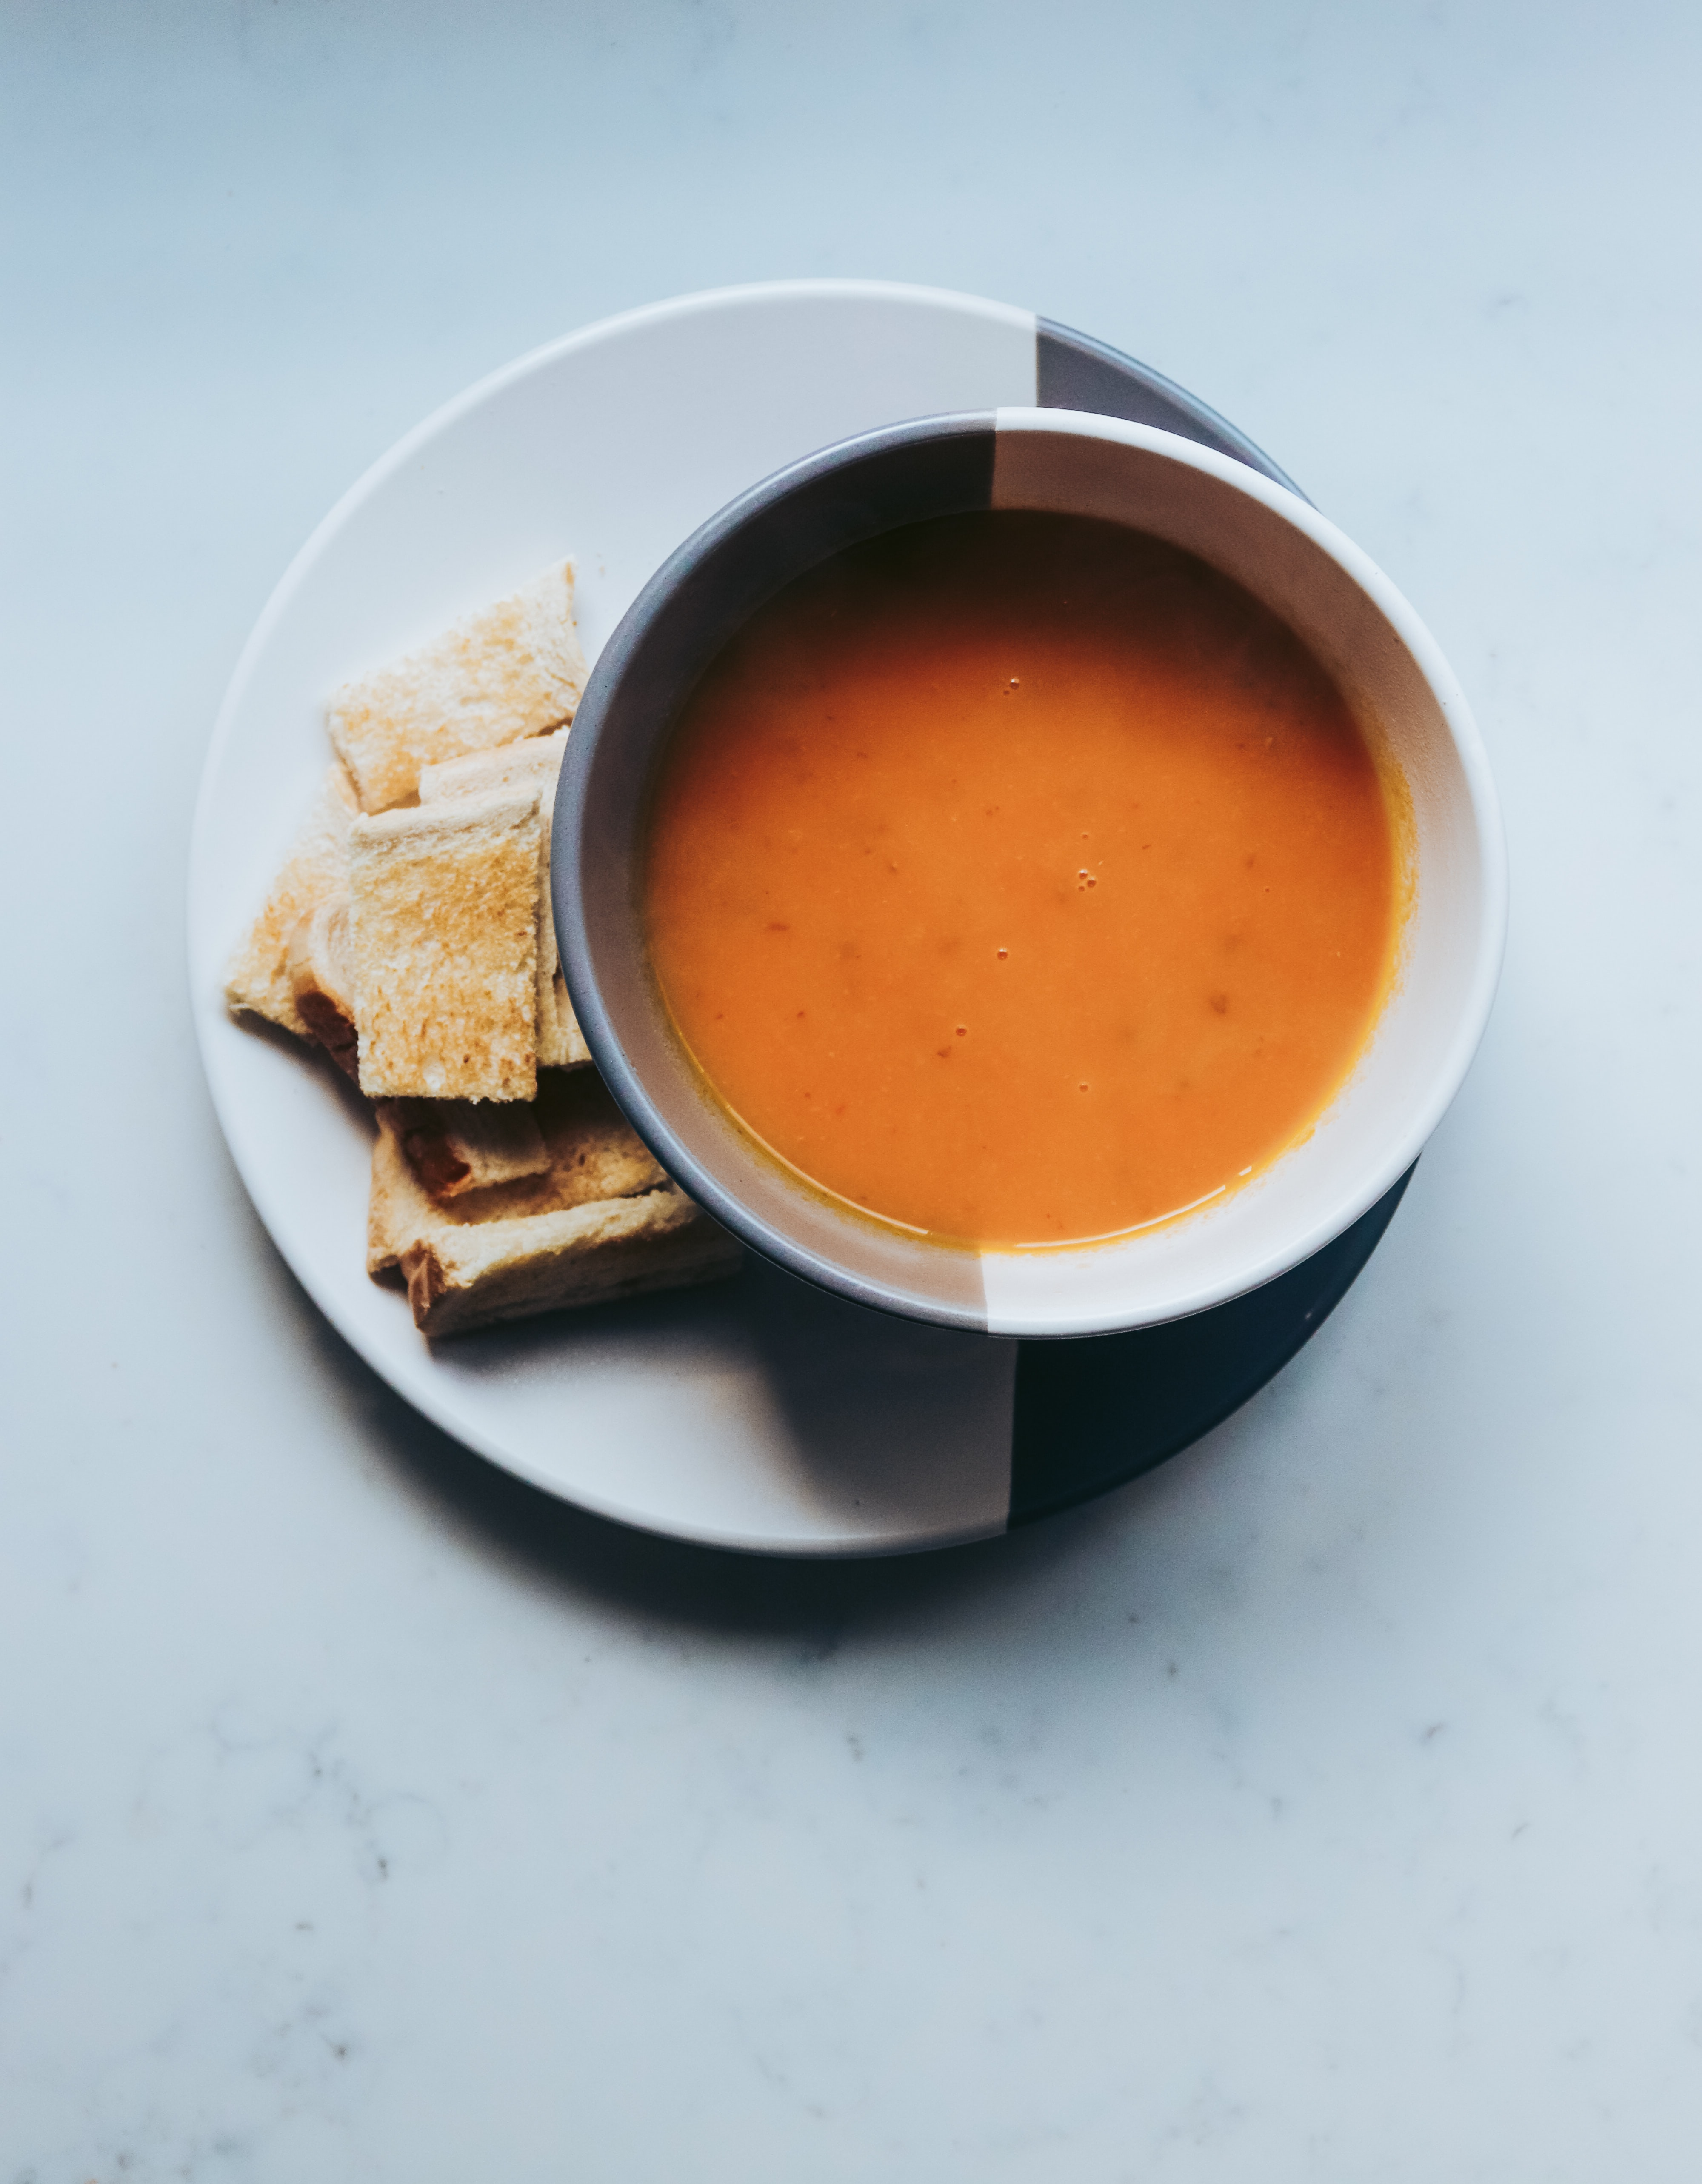 butternut squash soup in a bowl with toast on the side